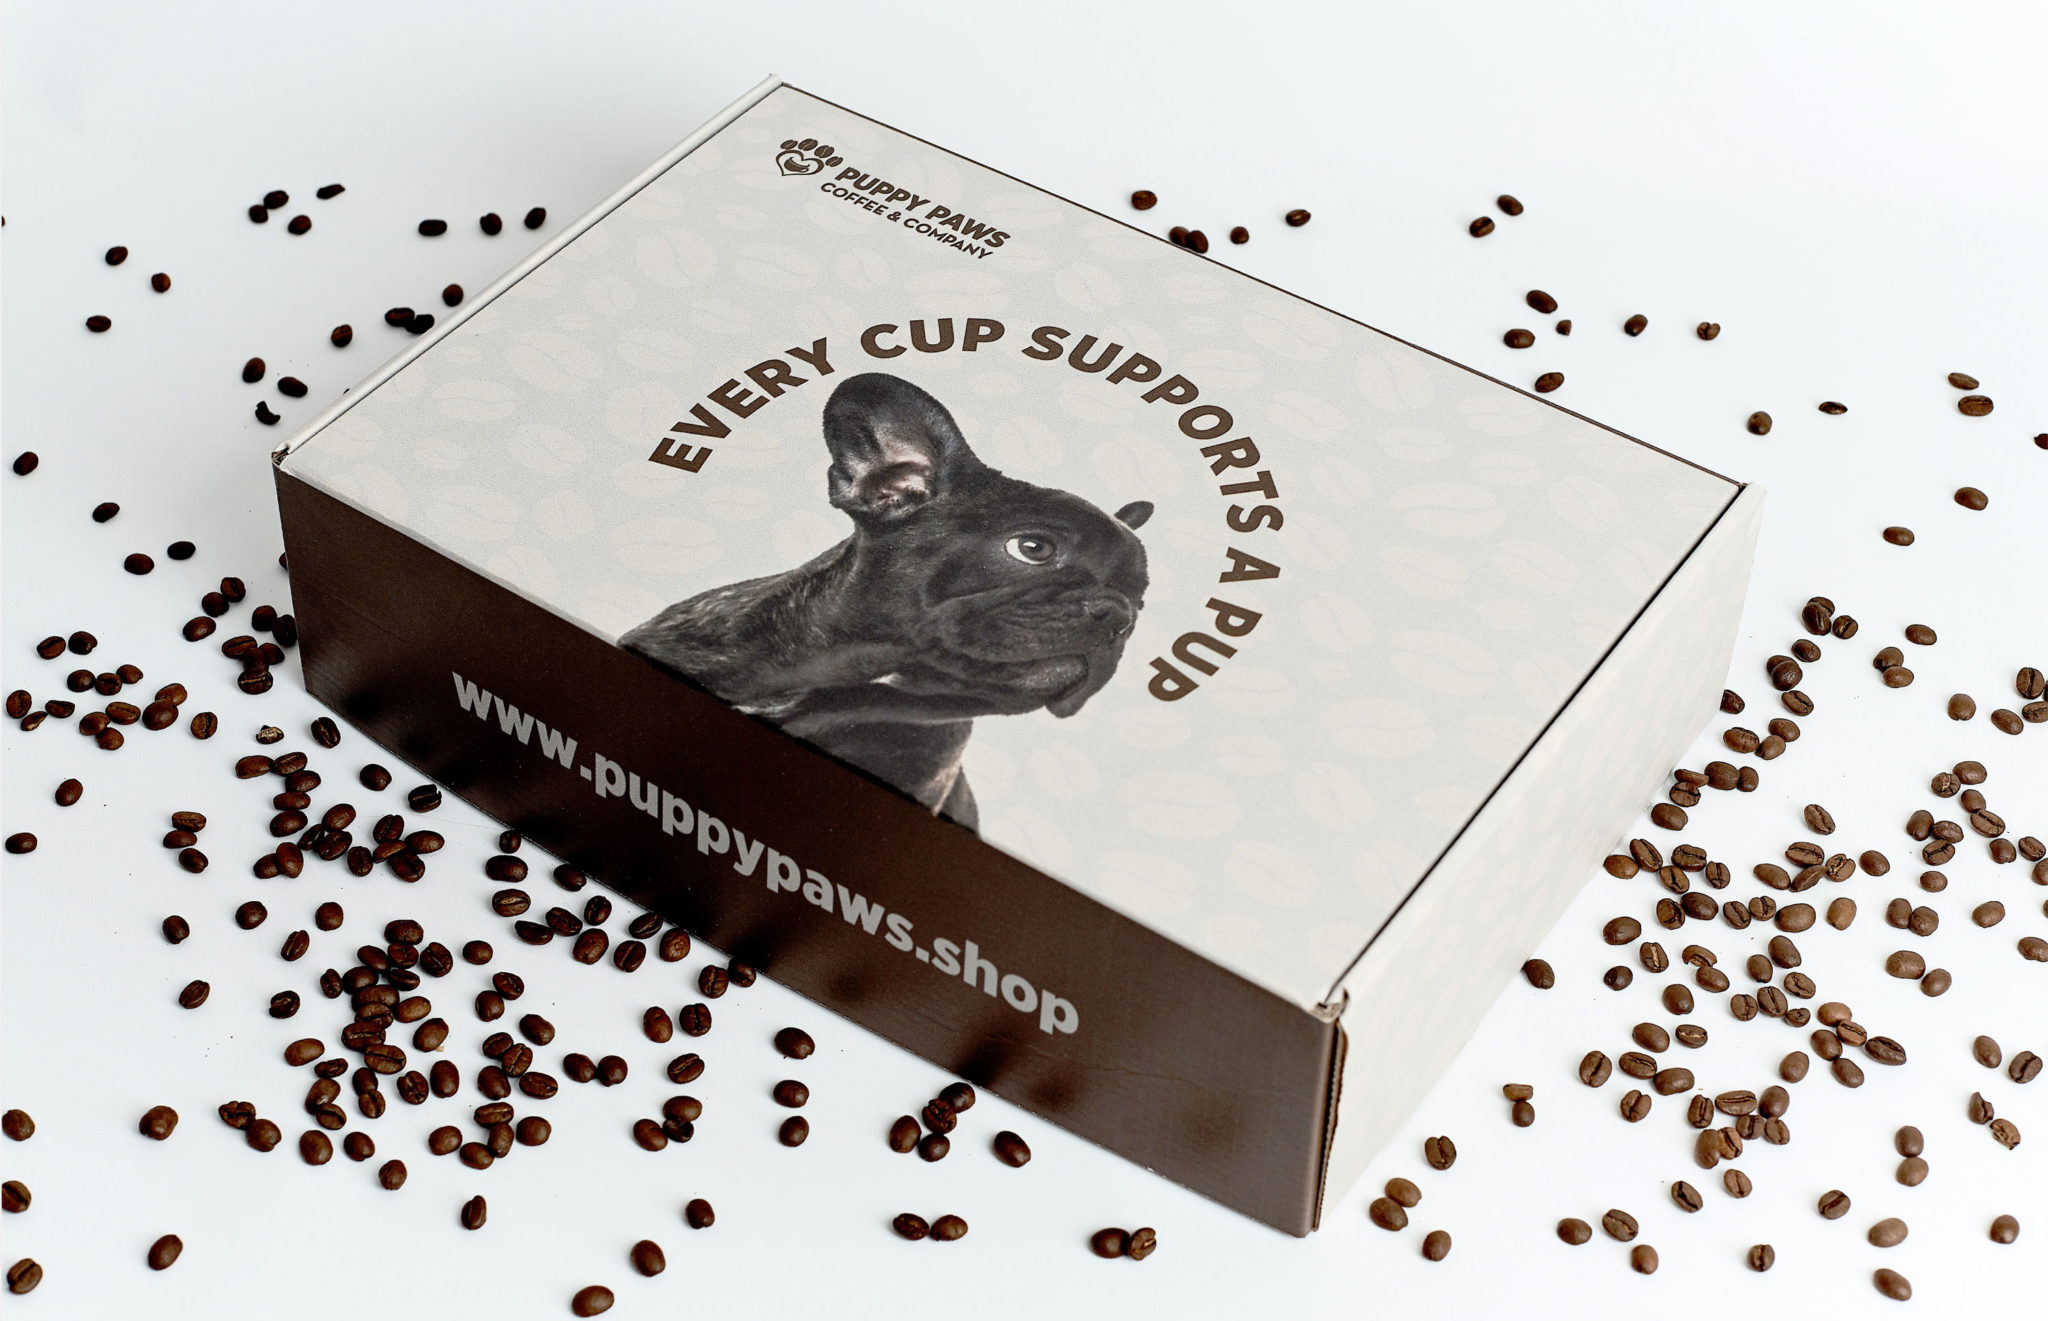 Puppy Paws Coffee subscription box package design